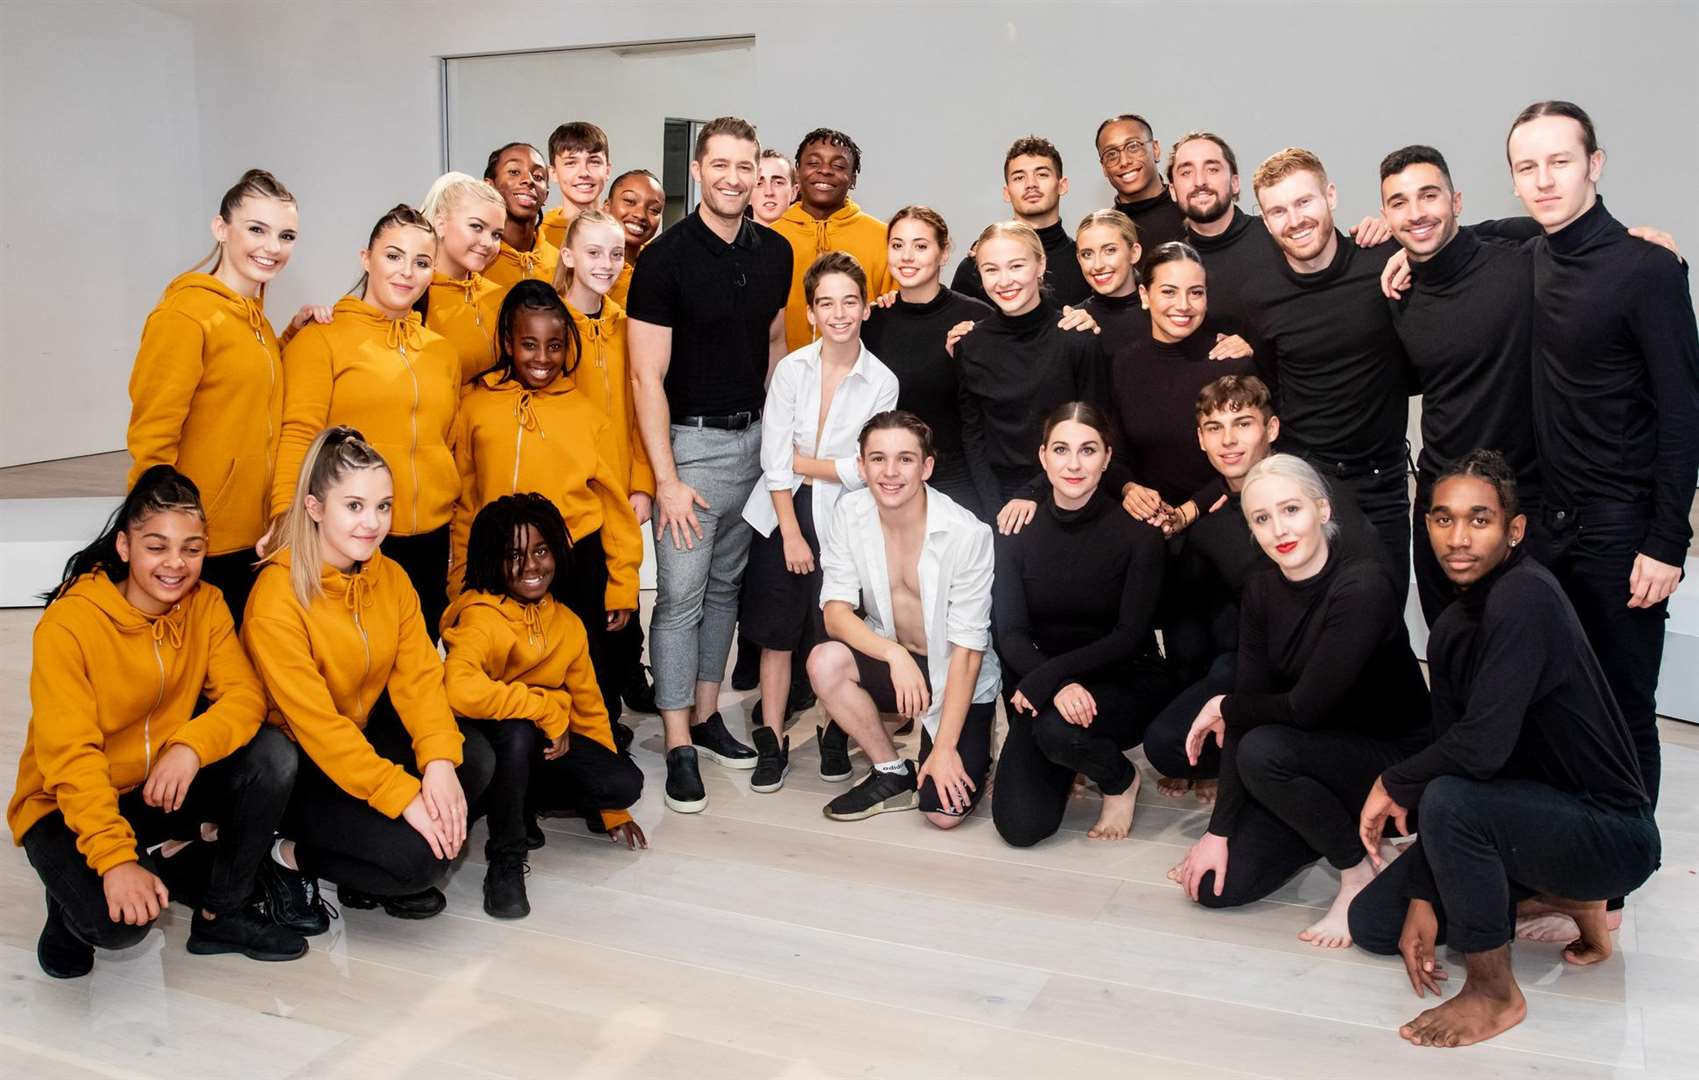 Street dance group Prospects Fraternity, with Tydd St Mary teenager Dolcie Simmons (back row, third left). Photo by Tom Dymond, courtesy of Syco/Thames Productions.